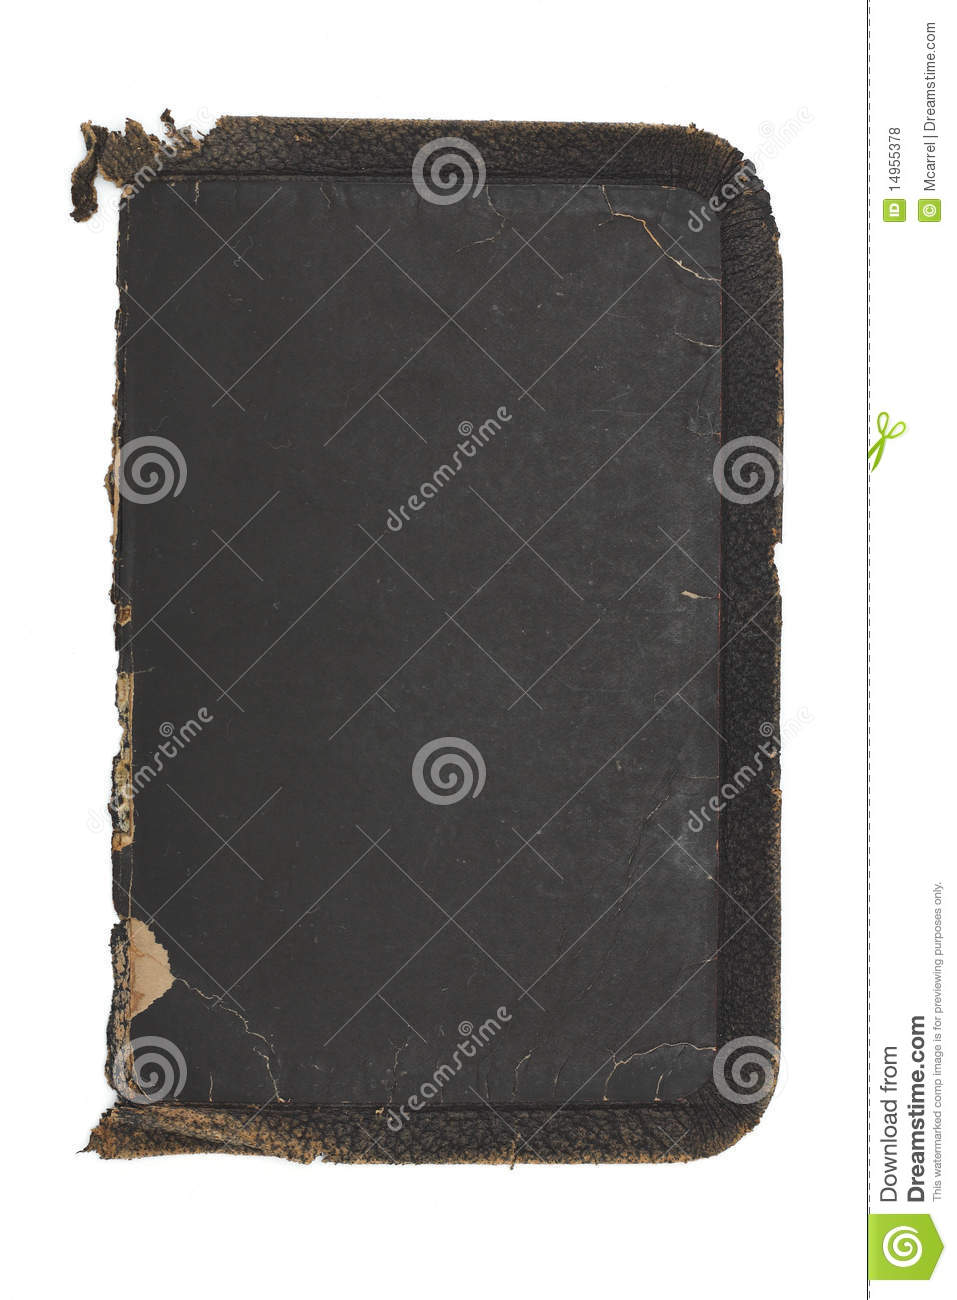 Old Book Inside Cover : Tattered old rough leather book cover inside royalty free